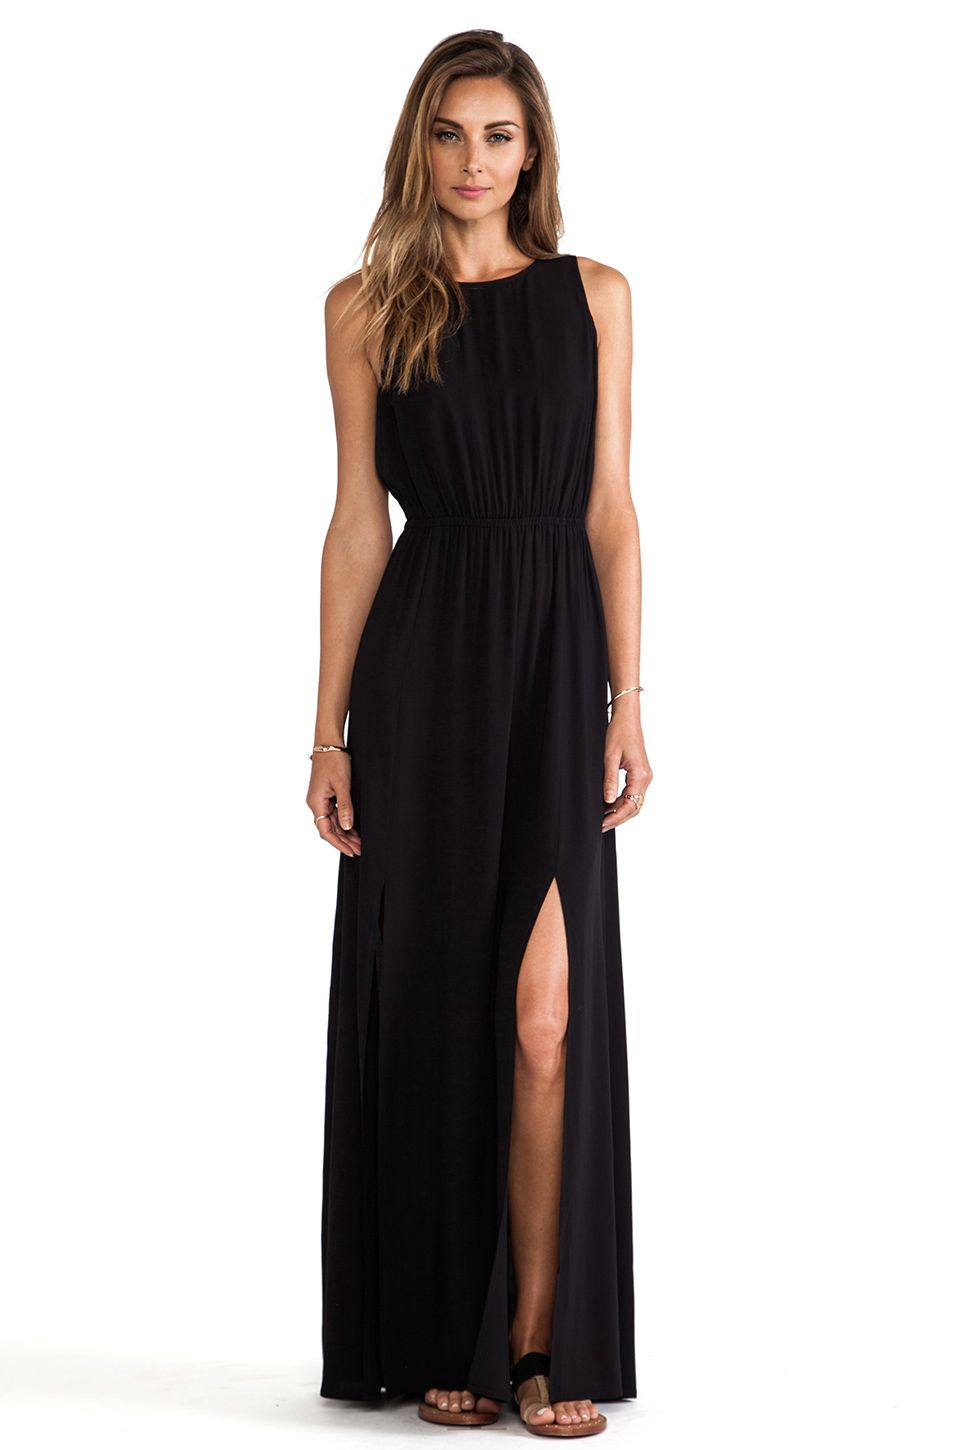 32867551d1ad Summer Black Maxi Dress. Day or Evening dress.  revolveclothing ...